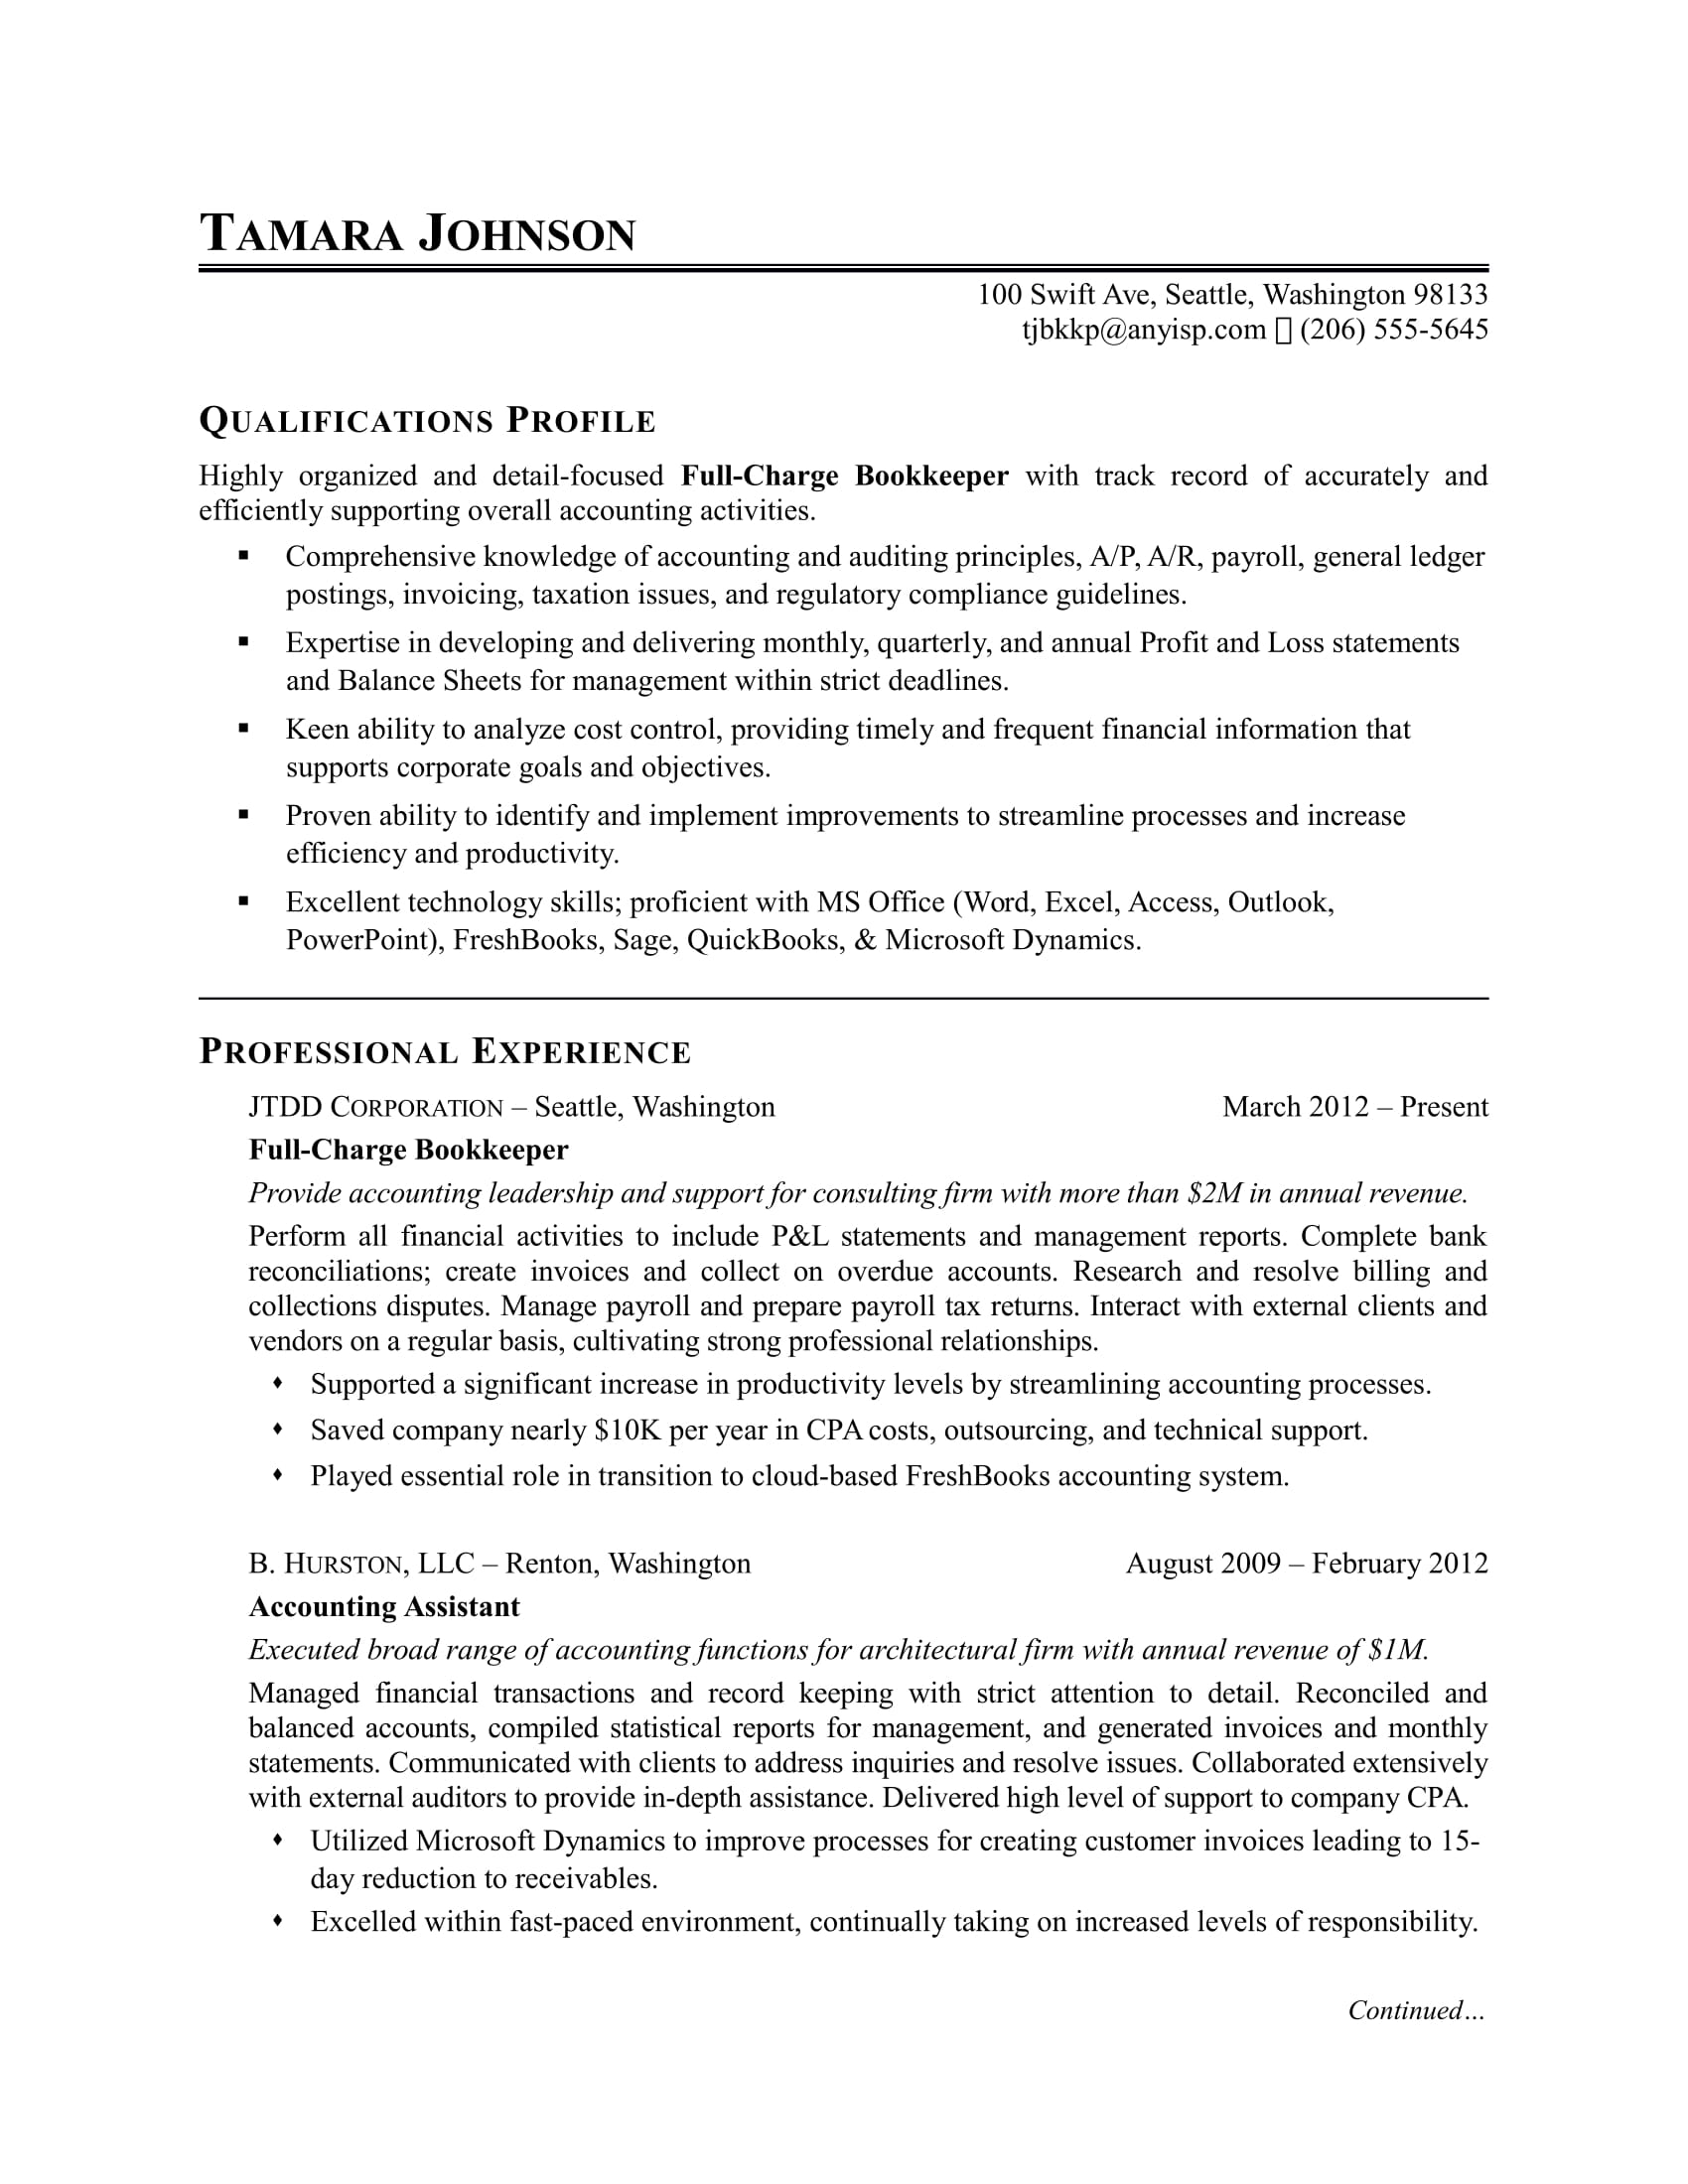 Superb Sample Resume For A Bookkeeper Within Resume For Bookkeeper